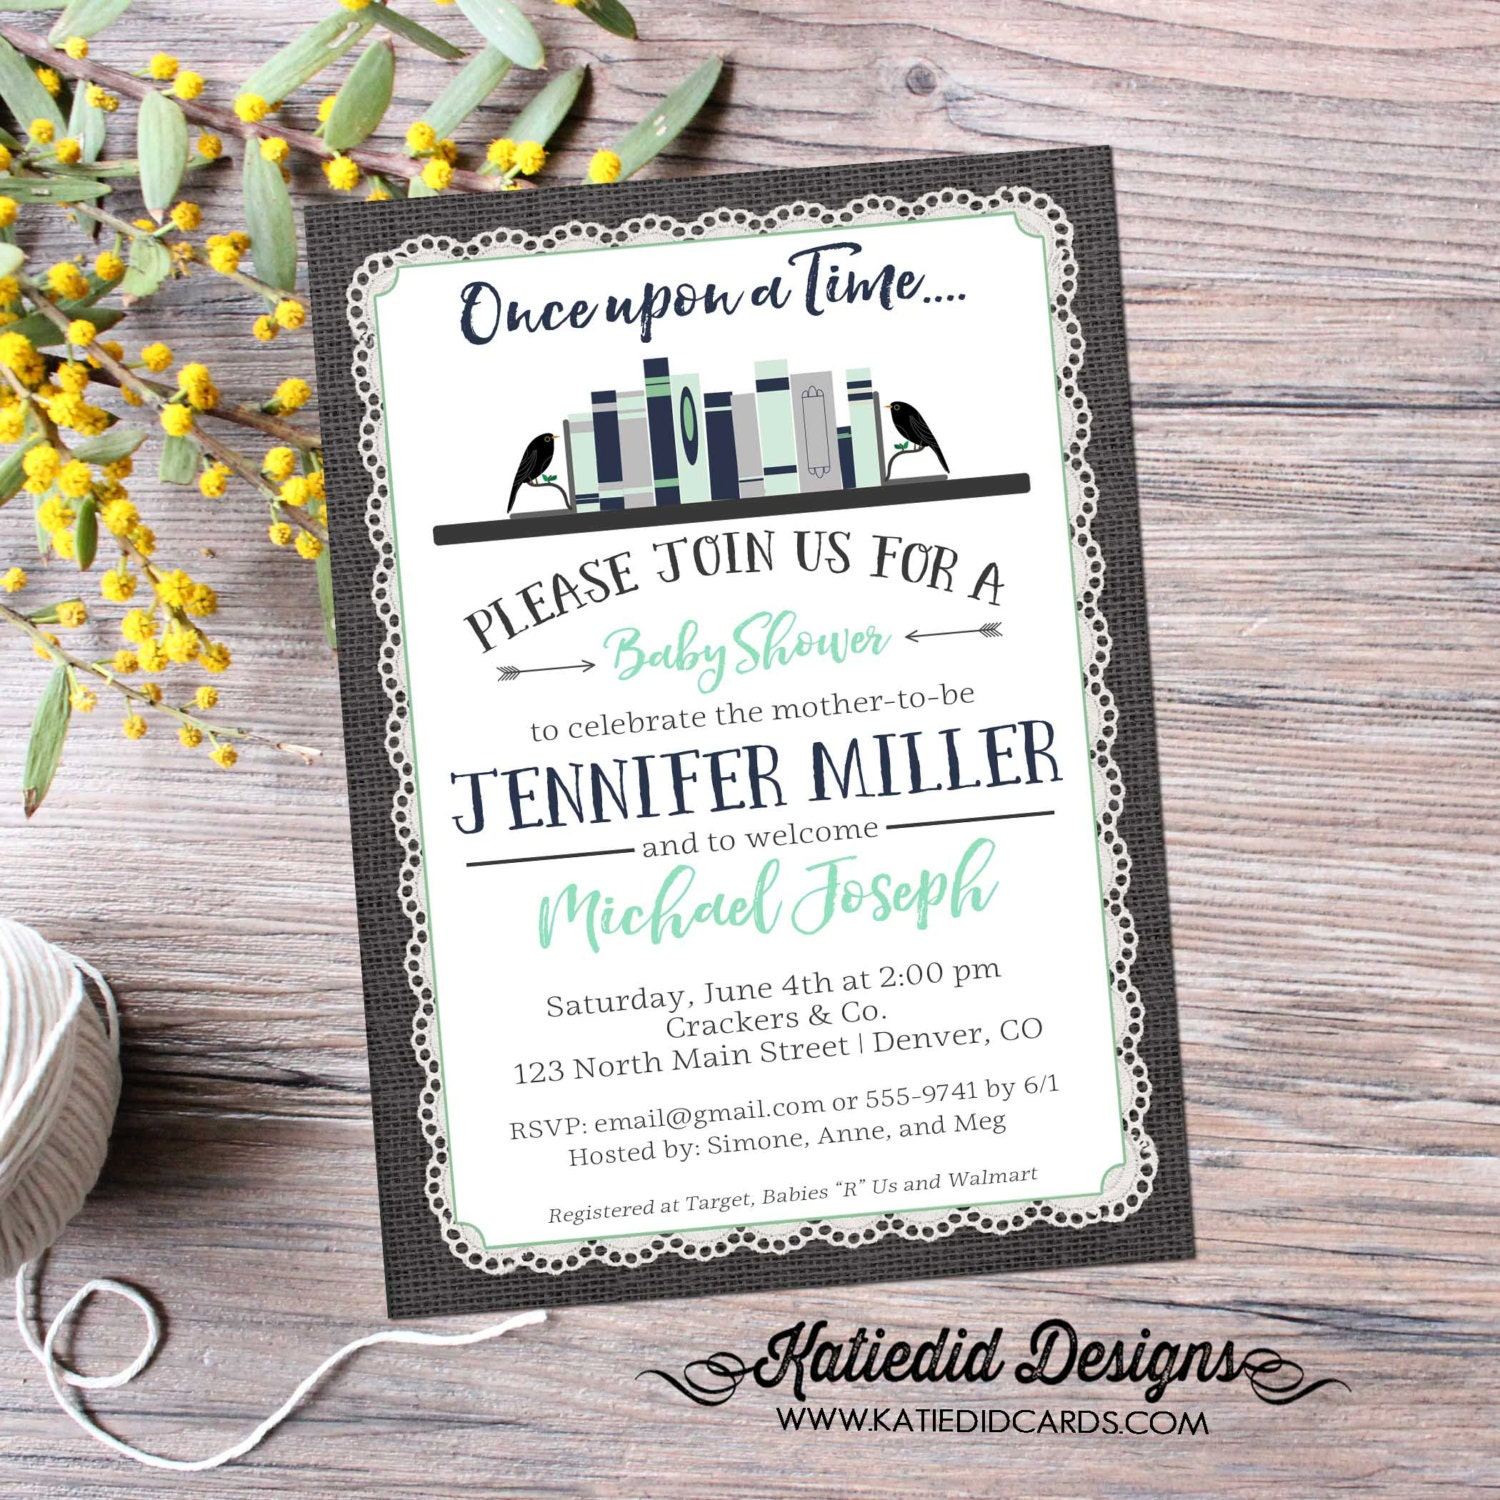 storybook once upon a time baby shower invitation boy book theme ...